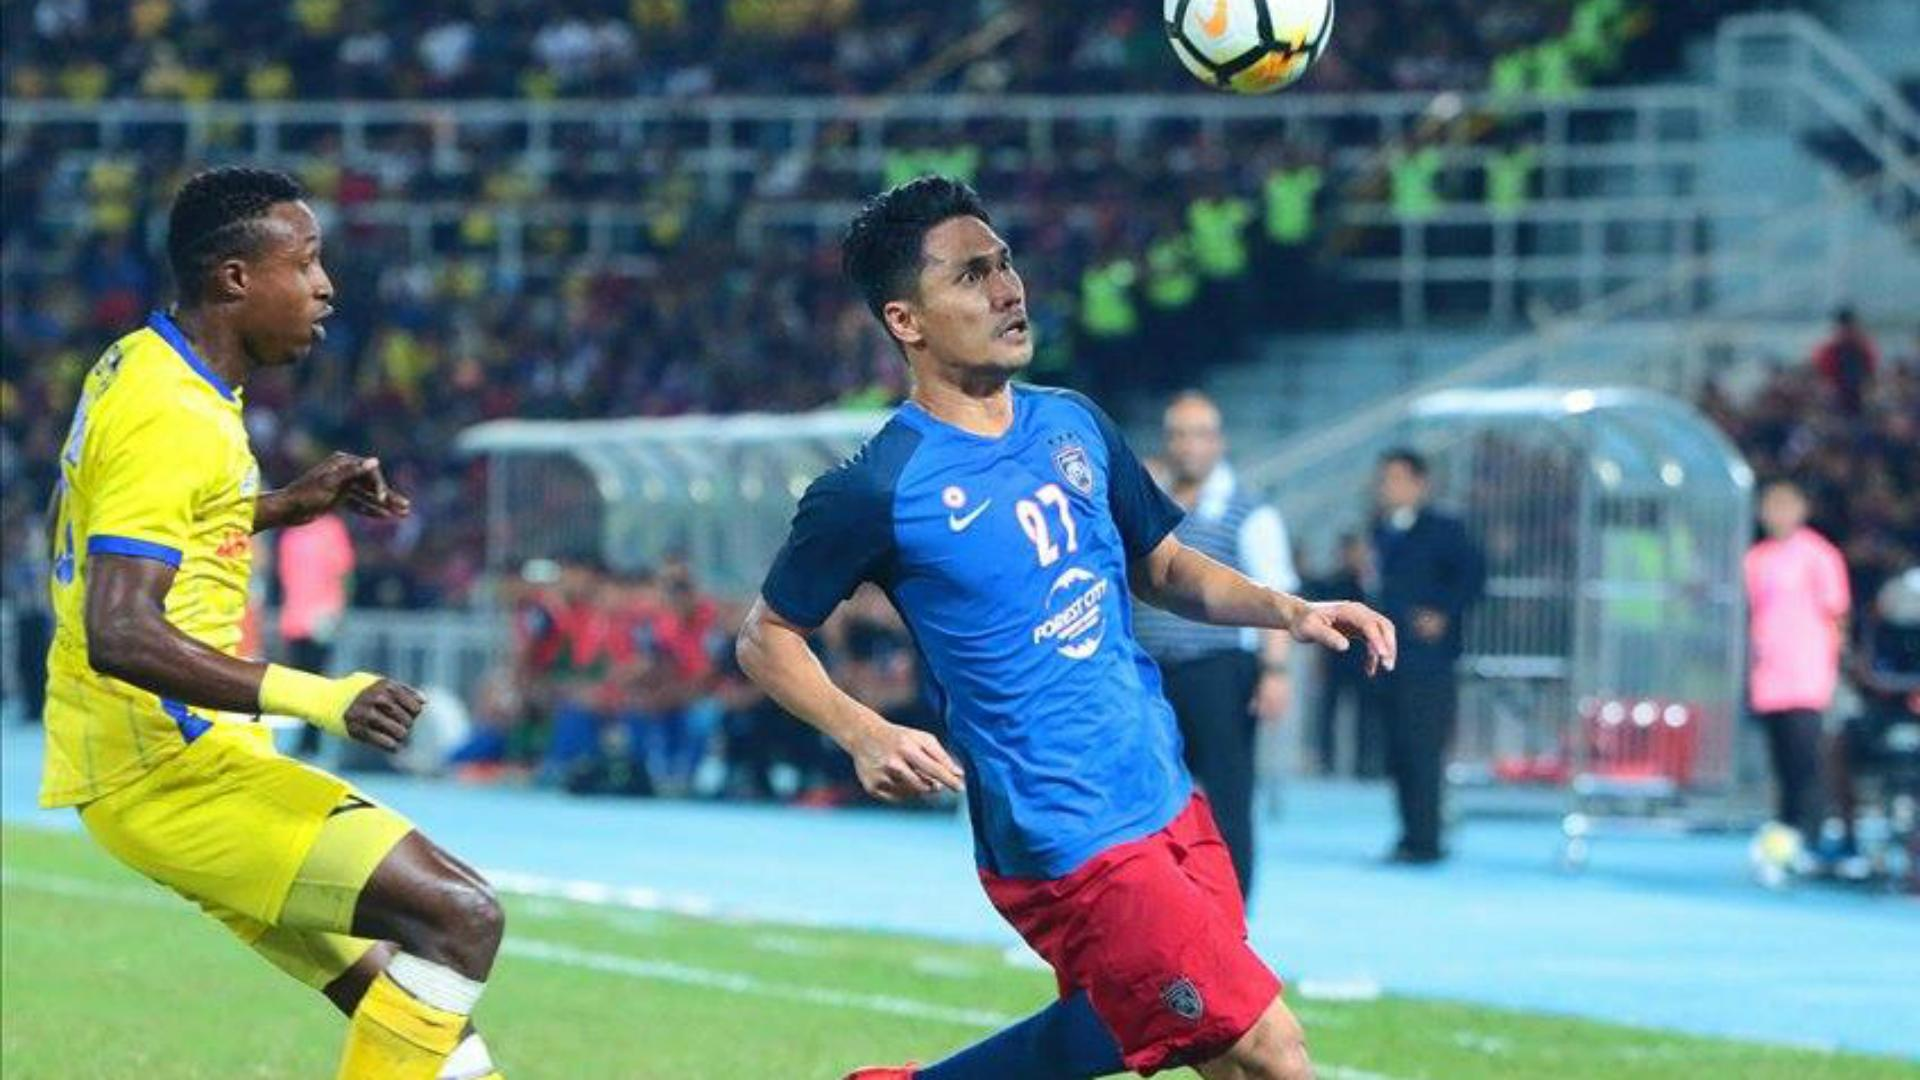 Pahang 0 JDT 0: 5 talking points - A game of nullifying ...